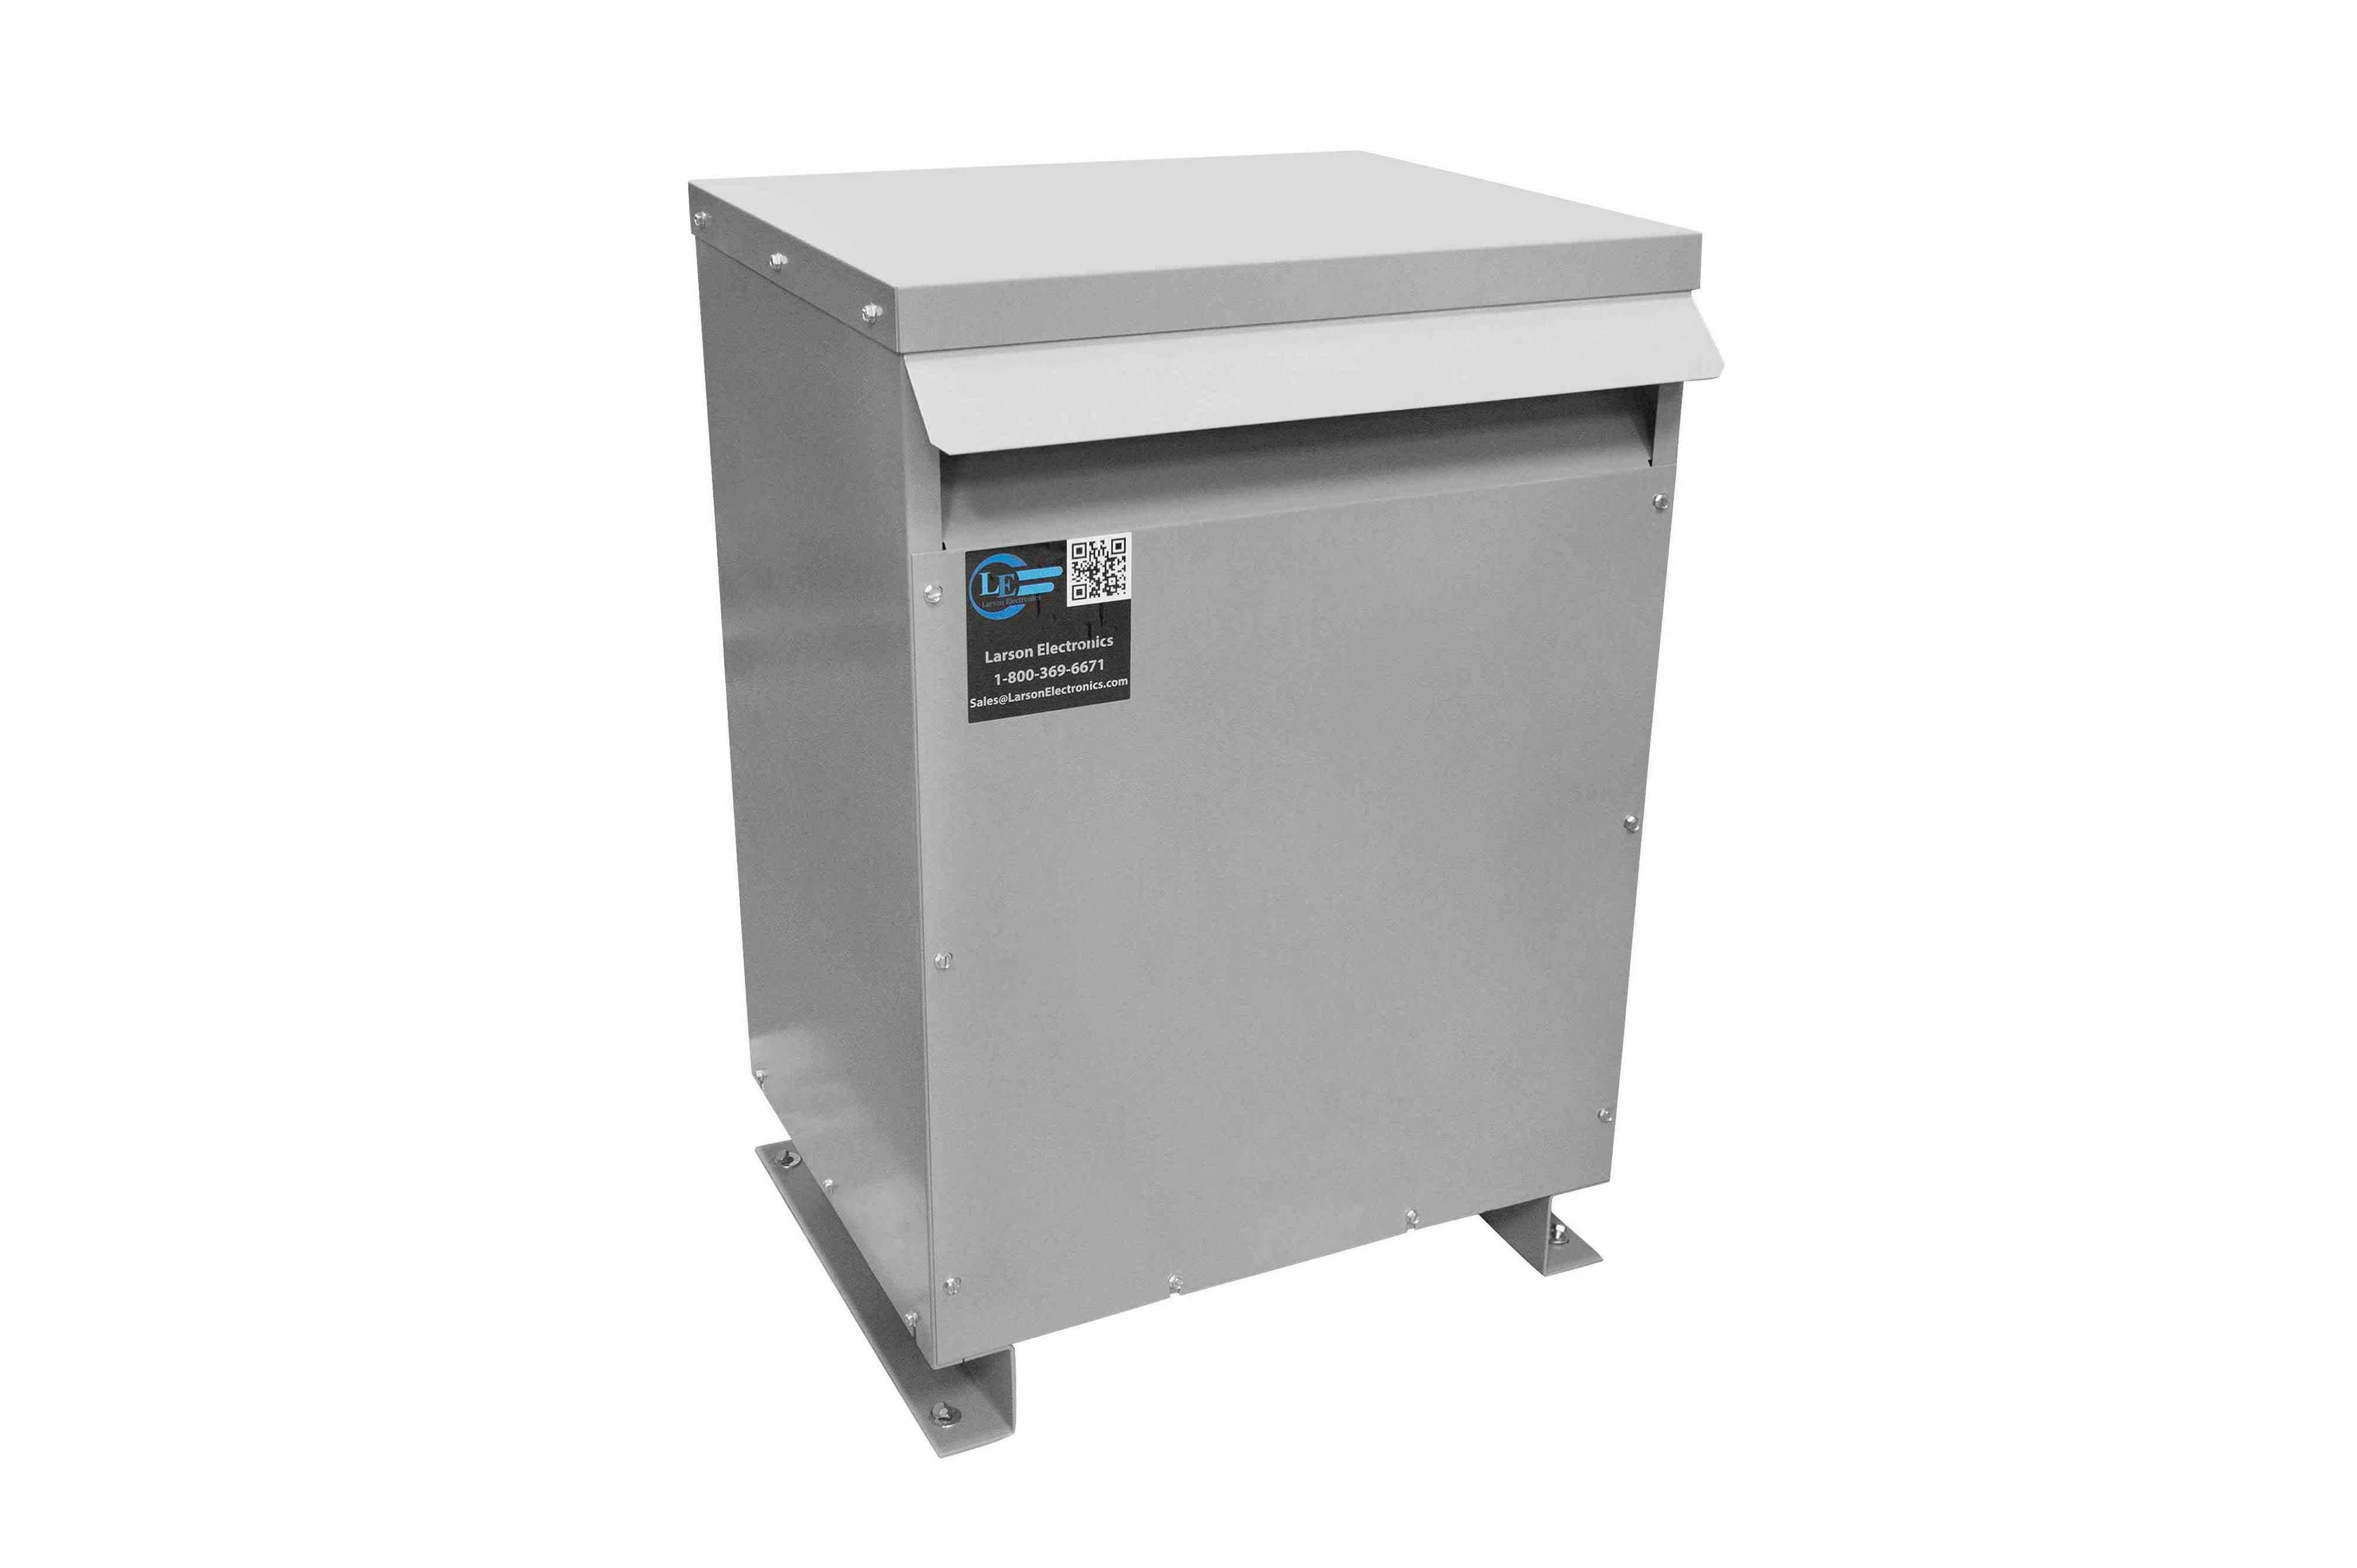 60 kVA 3PH Isolation Transformer, 480V Wye Primary, 240V Delta Secondary, N3R, Ventilated, 60 Hz